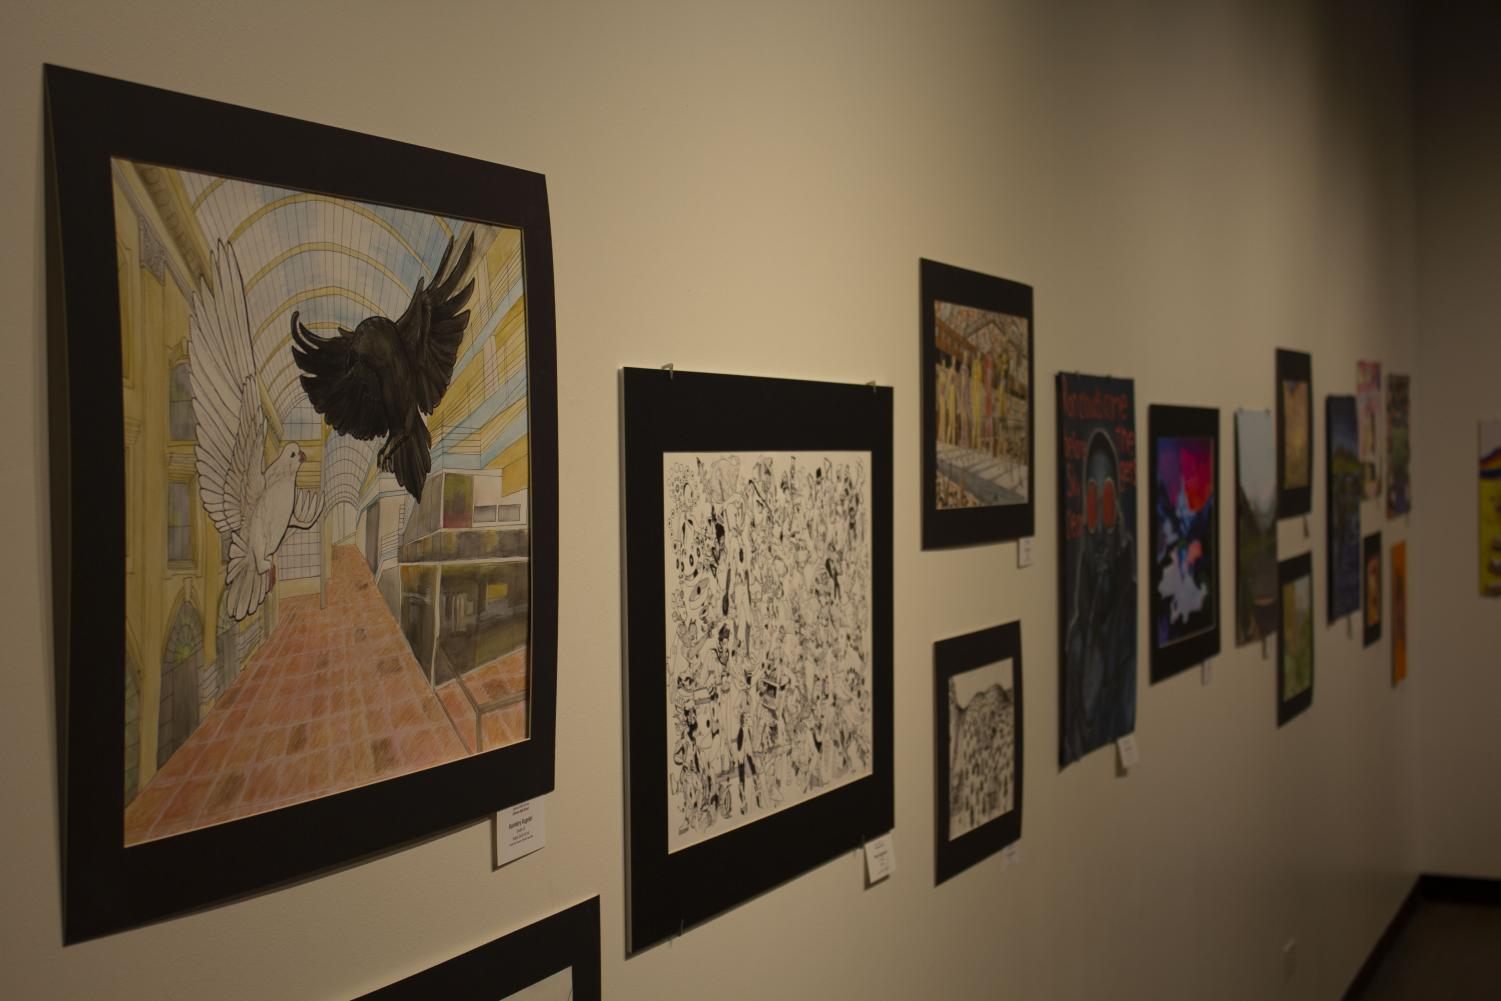 Art hung up at the Colorado Gallery of the Arts in Littleton, CO.